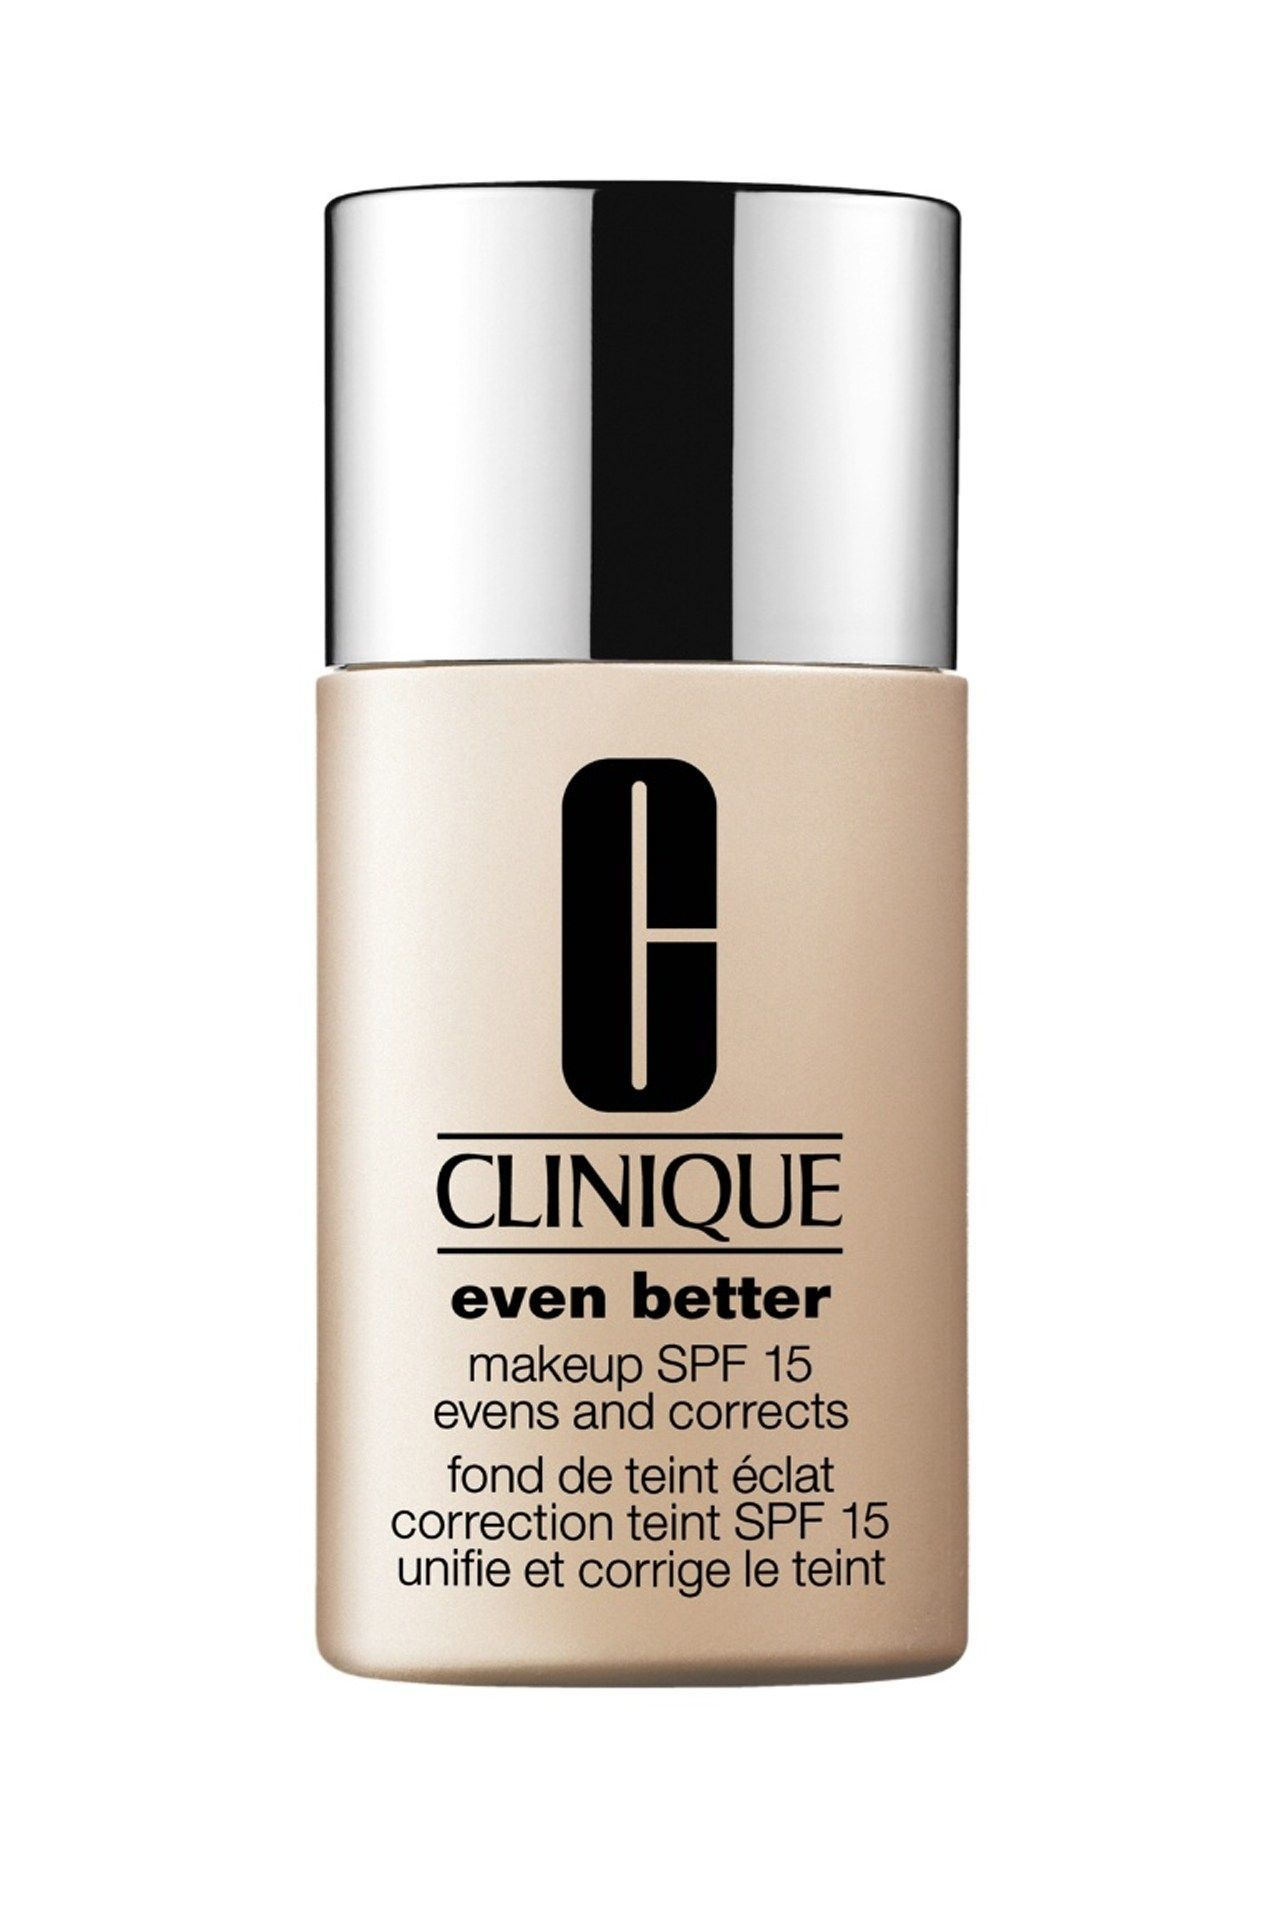 The Best Foundation For Every Skin Type Best makeup